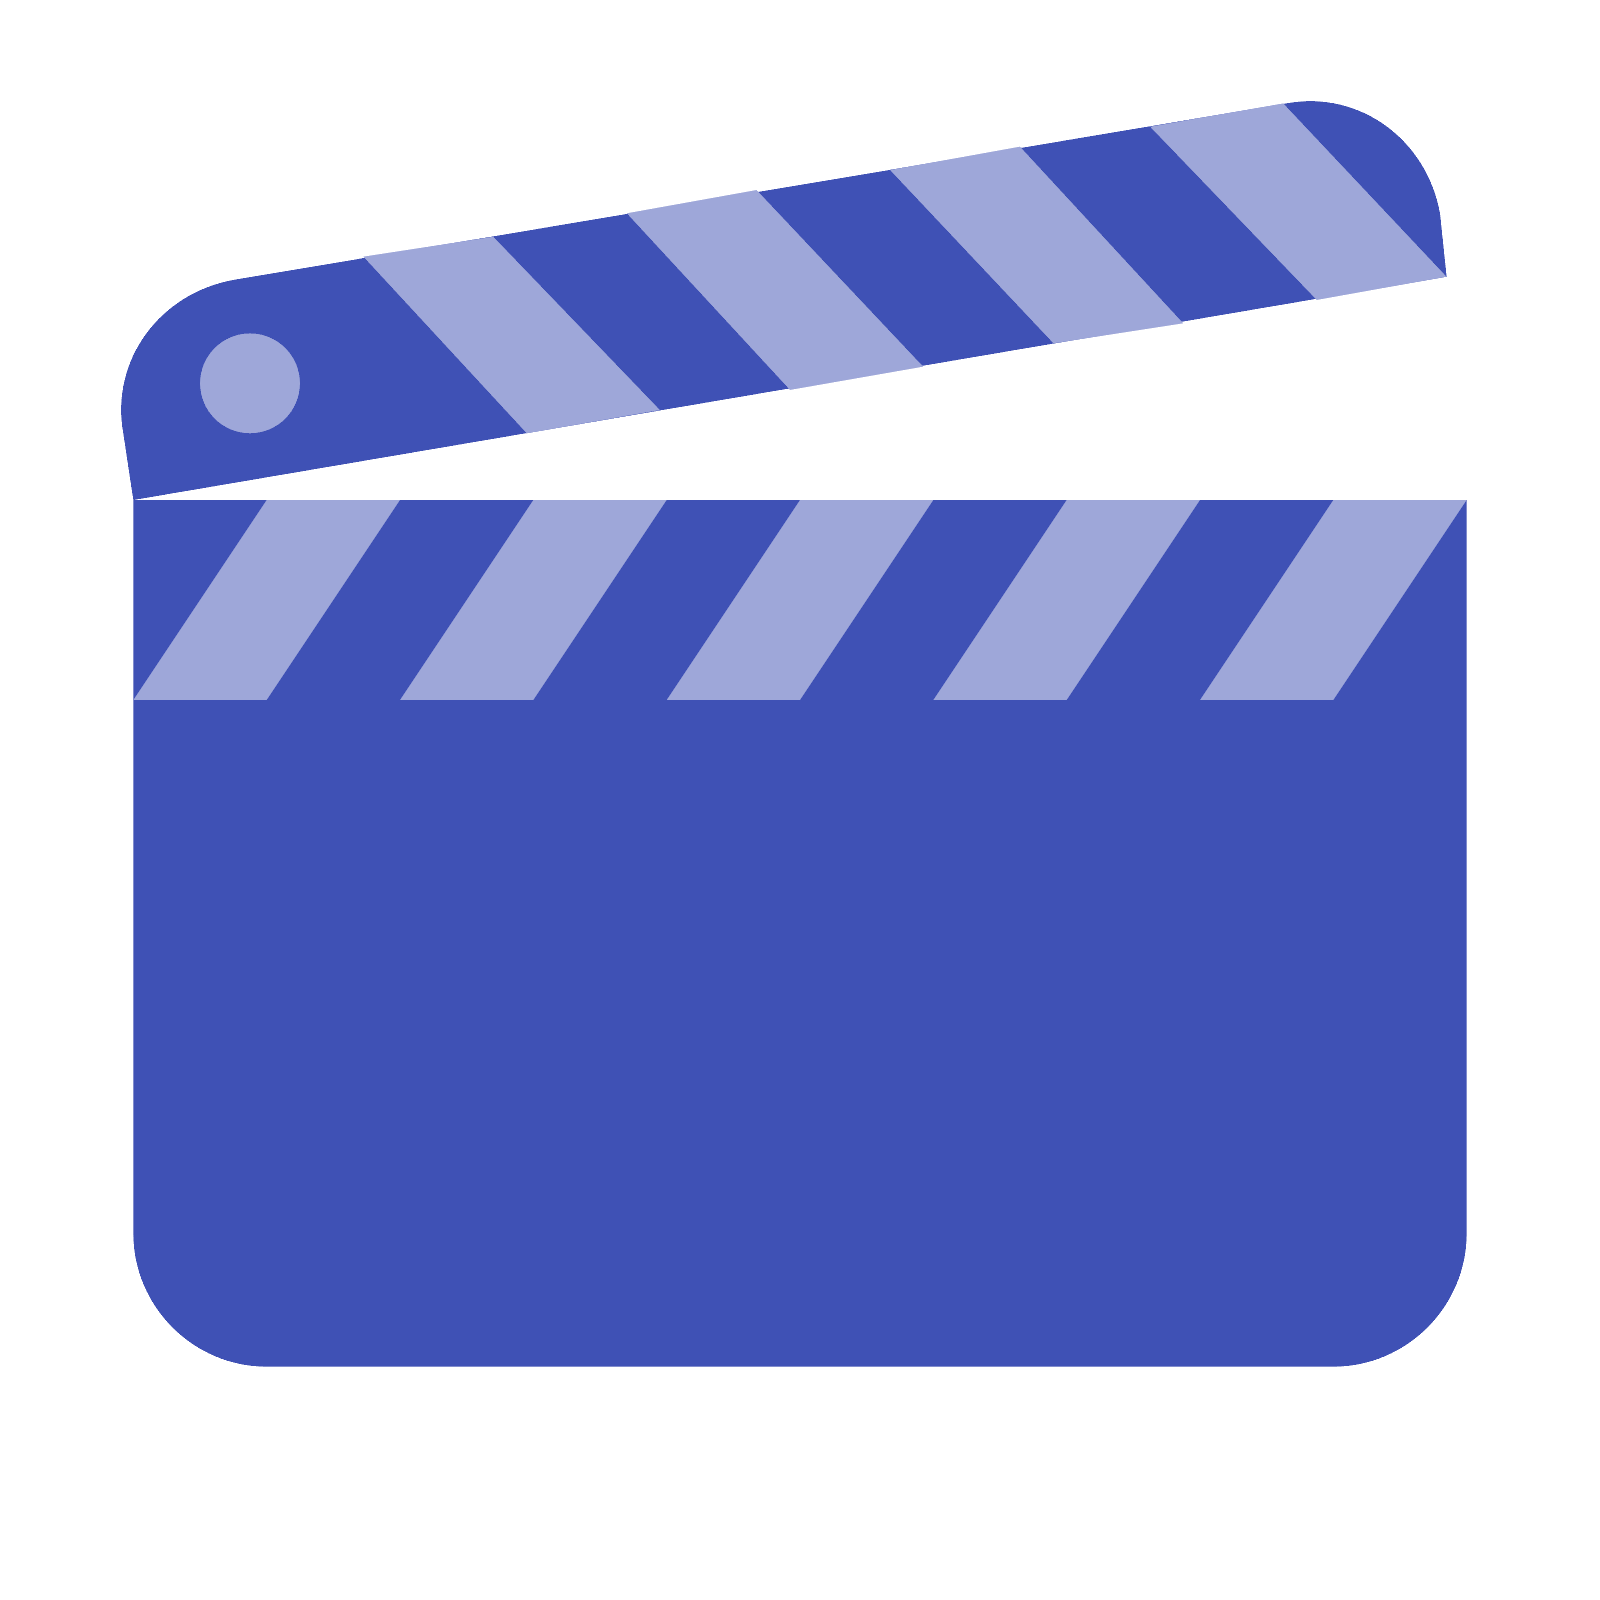 Png blue movies. Clapperboard cinematography computer icons